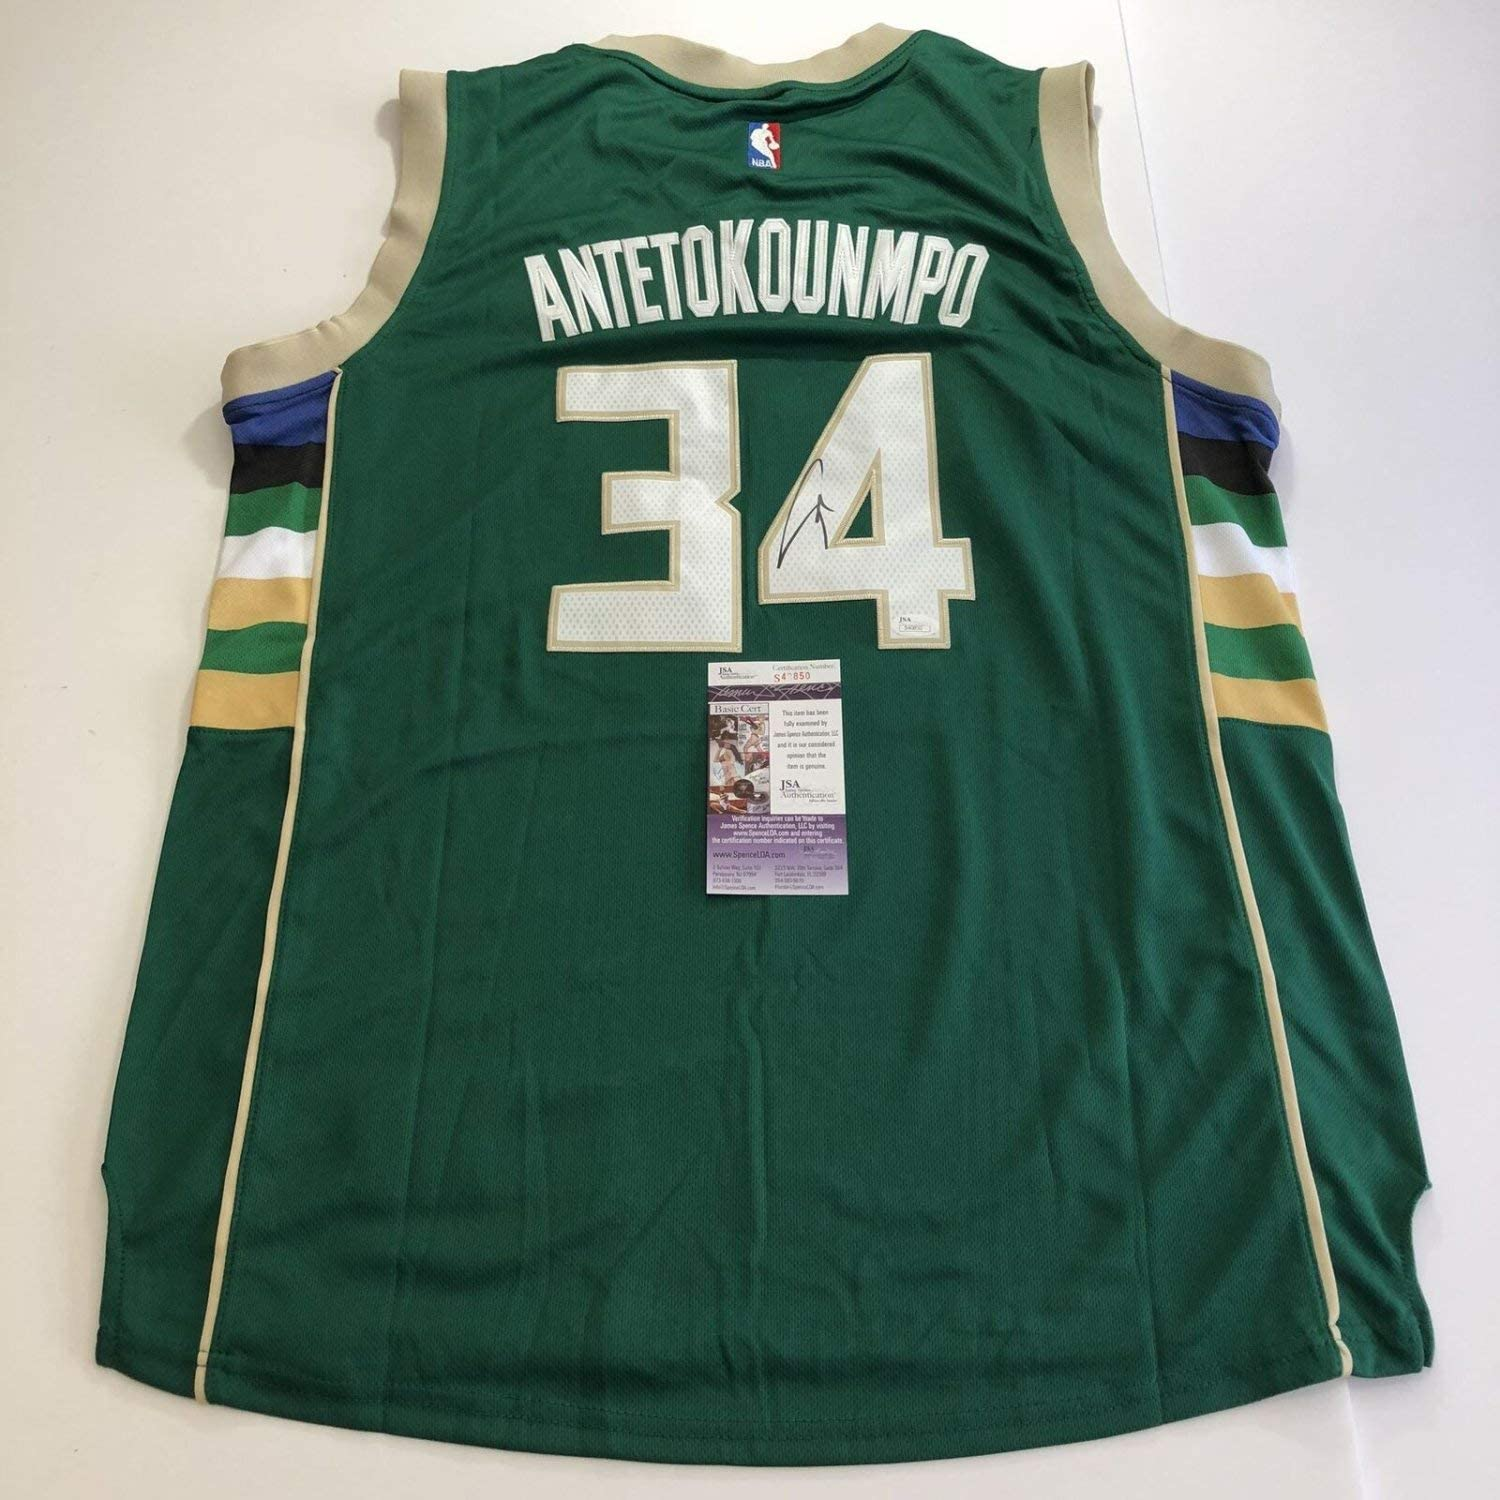 Giannis Antetokounmpo Autographed Signed Jersey JSA Milwaukee Bucks Autographed